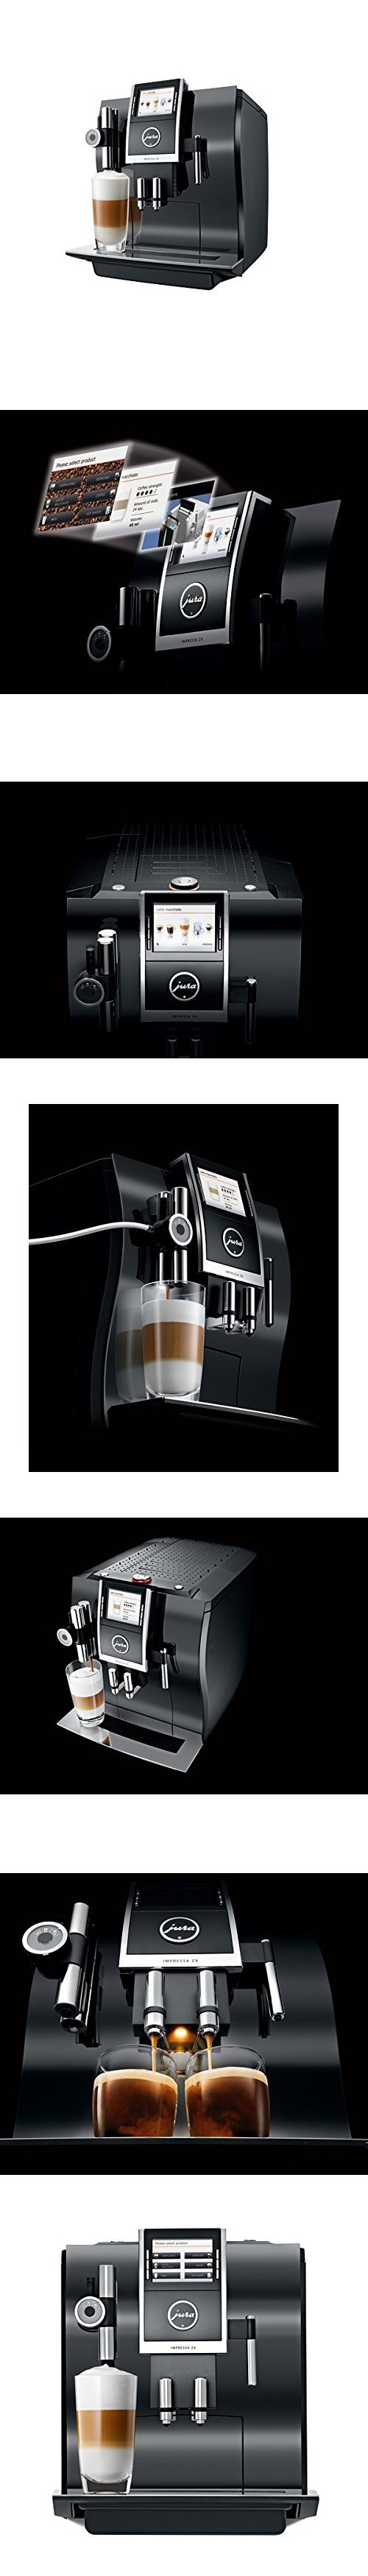 Jura 13752 Automatic Impressa Z9 One Touch TFT Coffee